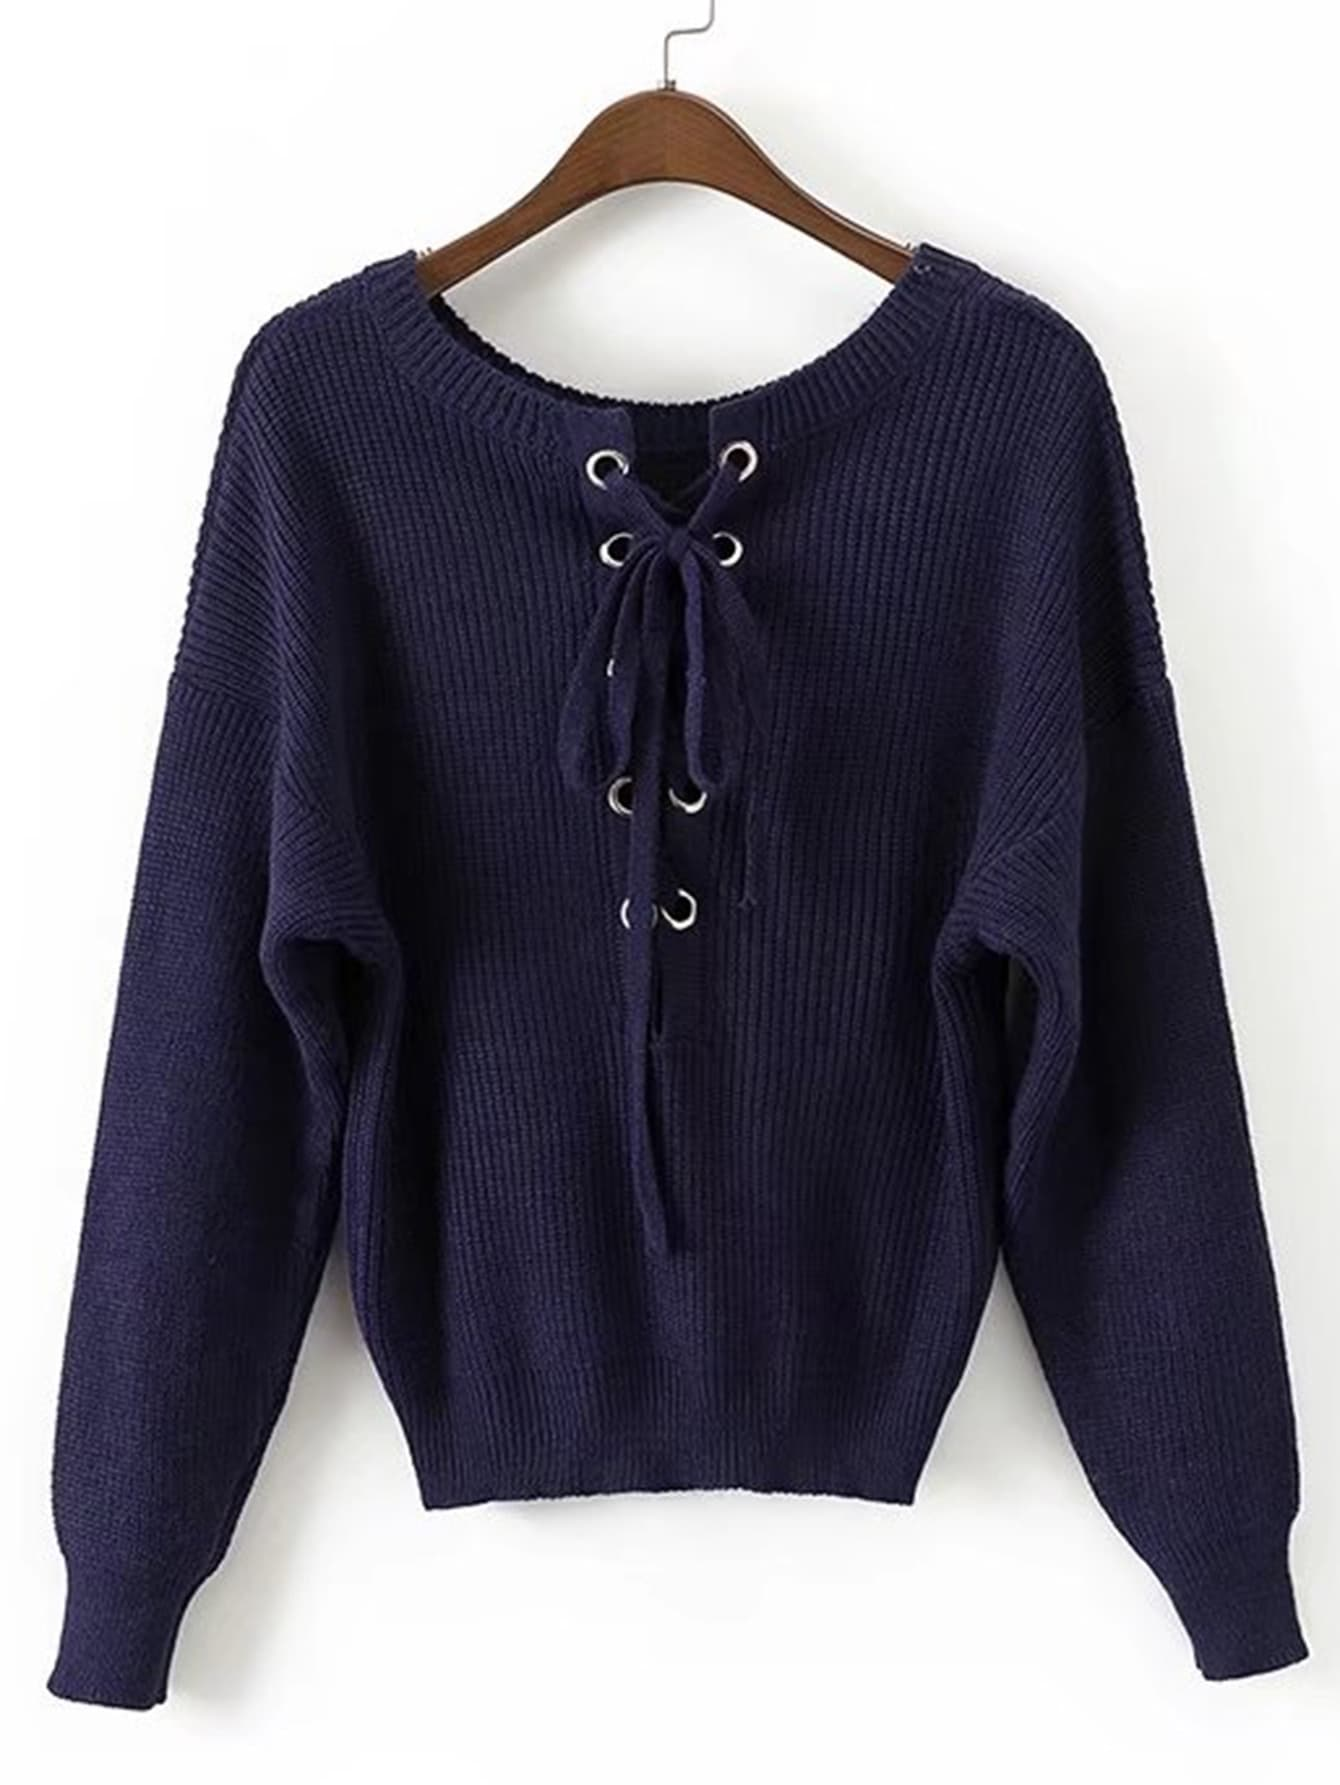 Eyelet Lace Up Ribbed Sweater sweater170825207